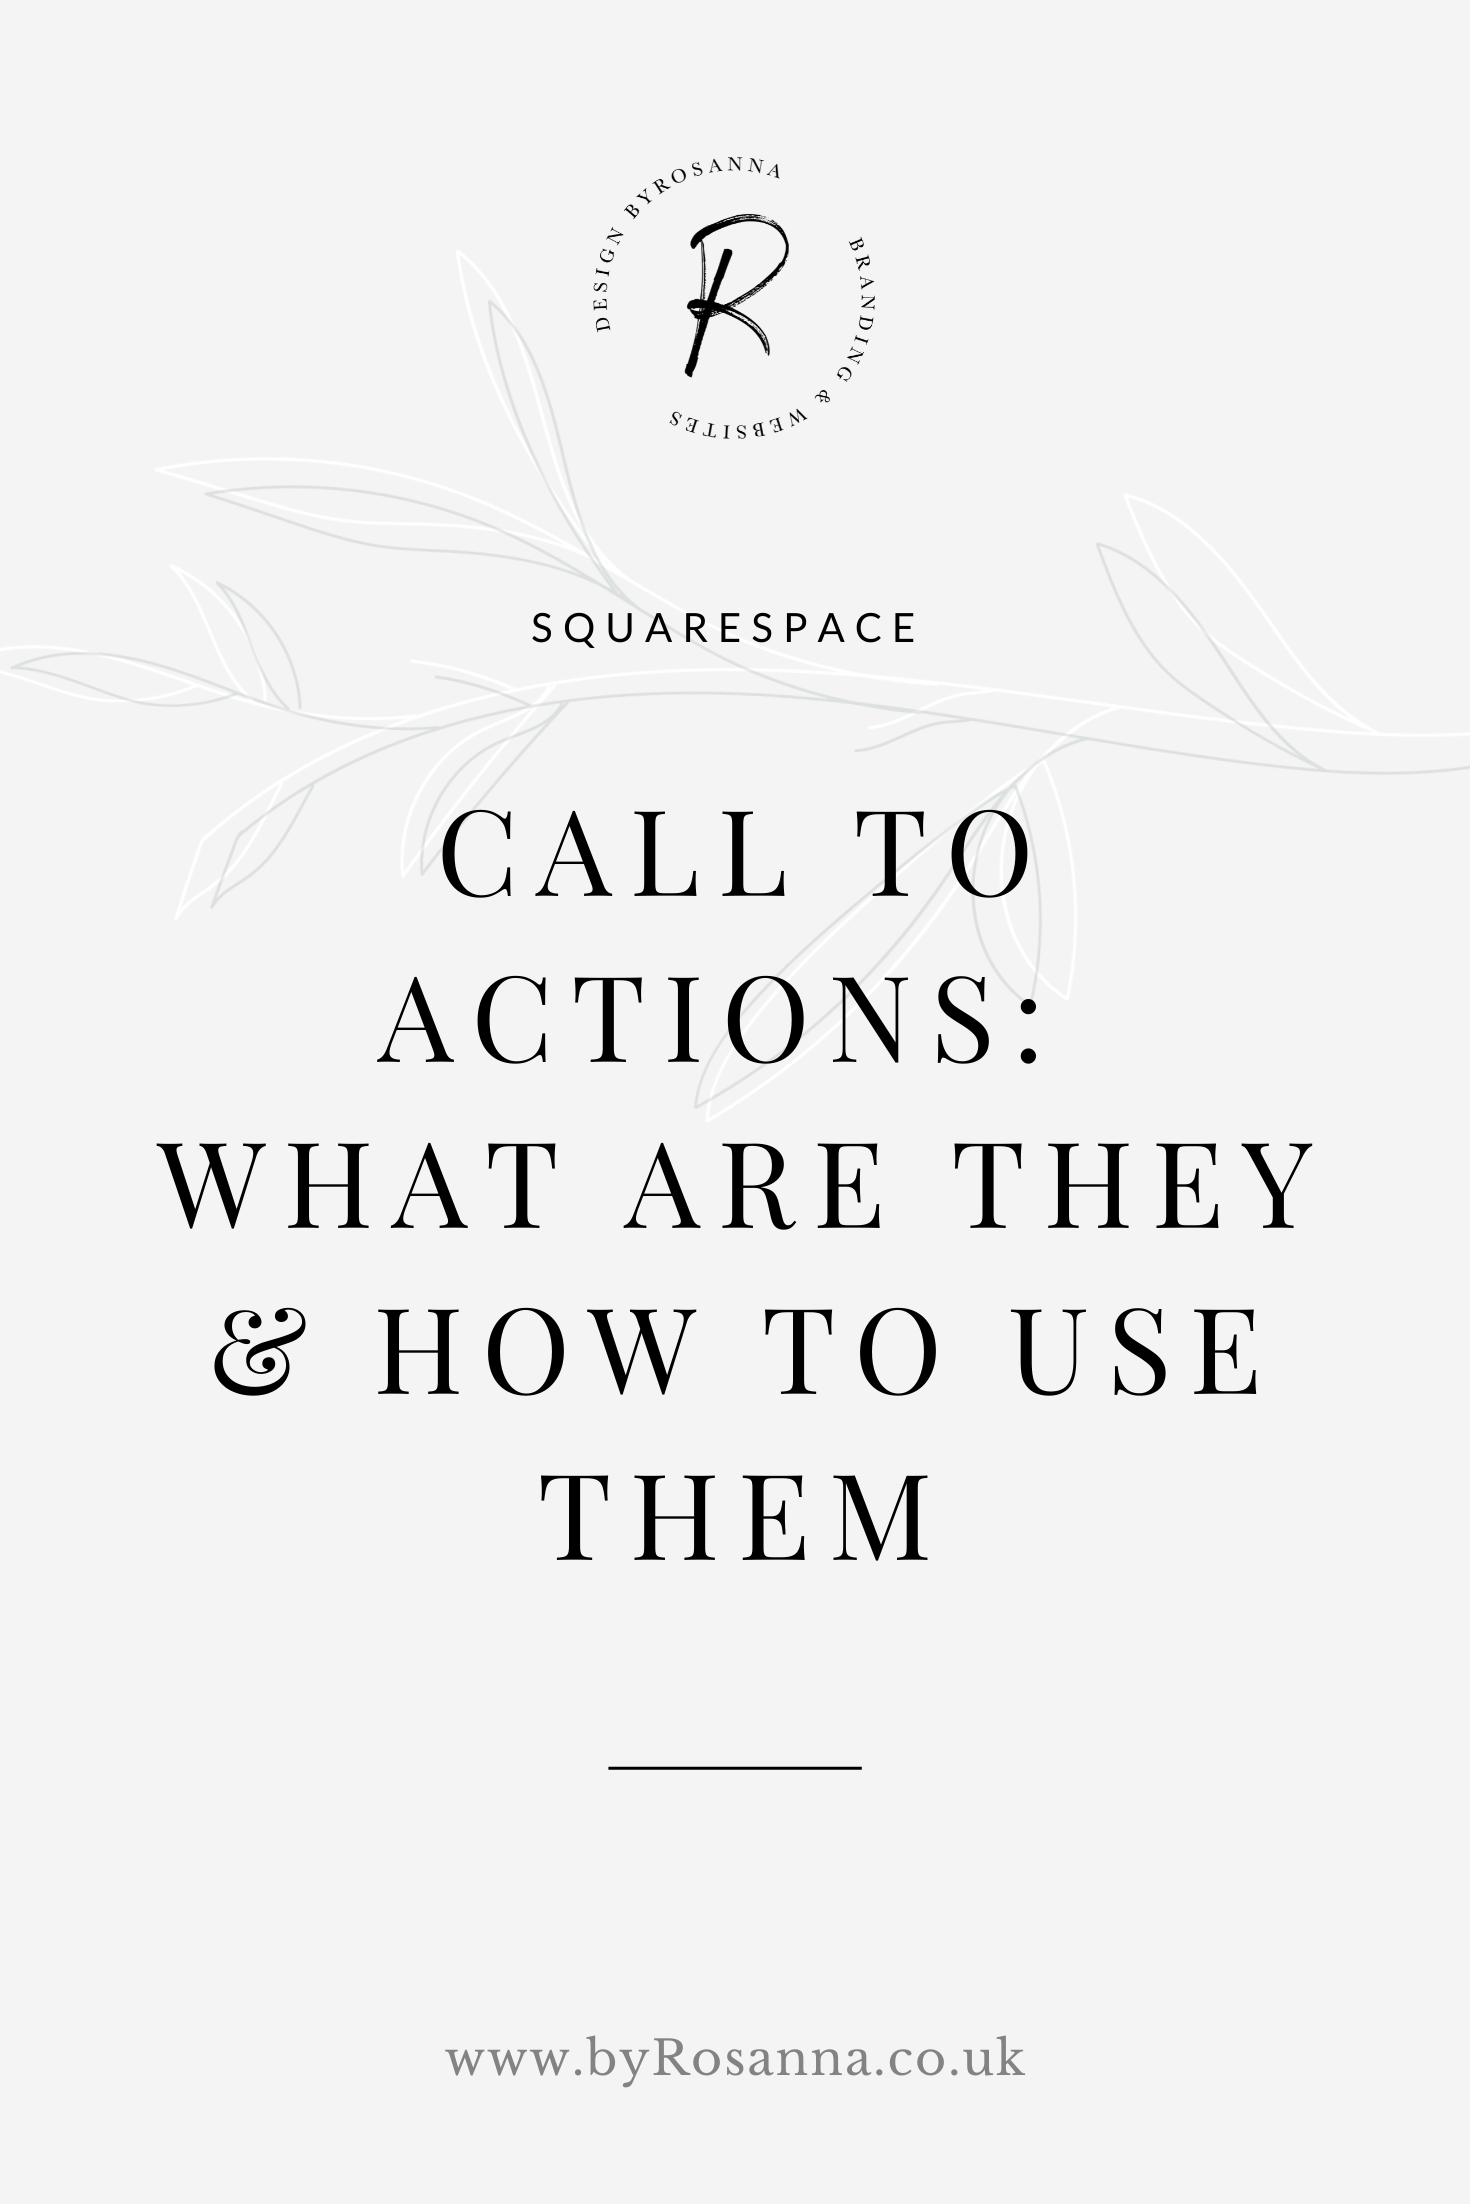 Call to Actions: What are they and how to use them | #calltoaction #squarespacetips #websitetips